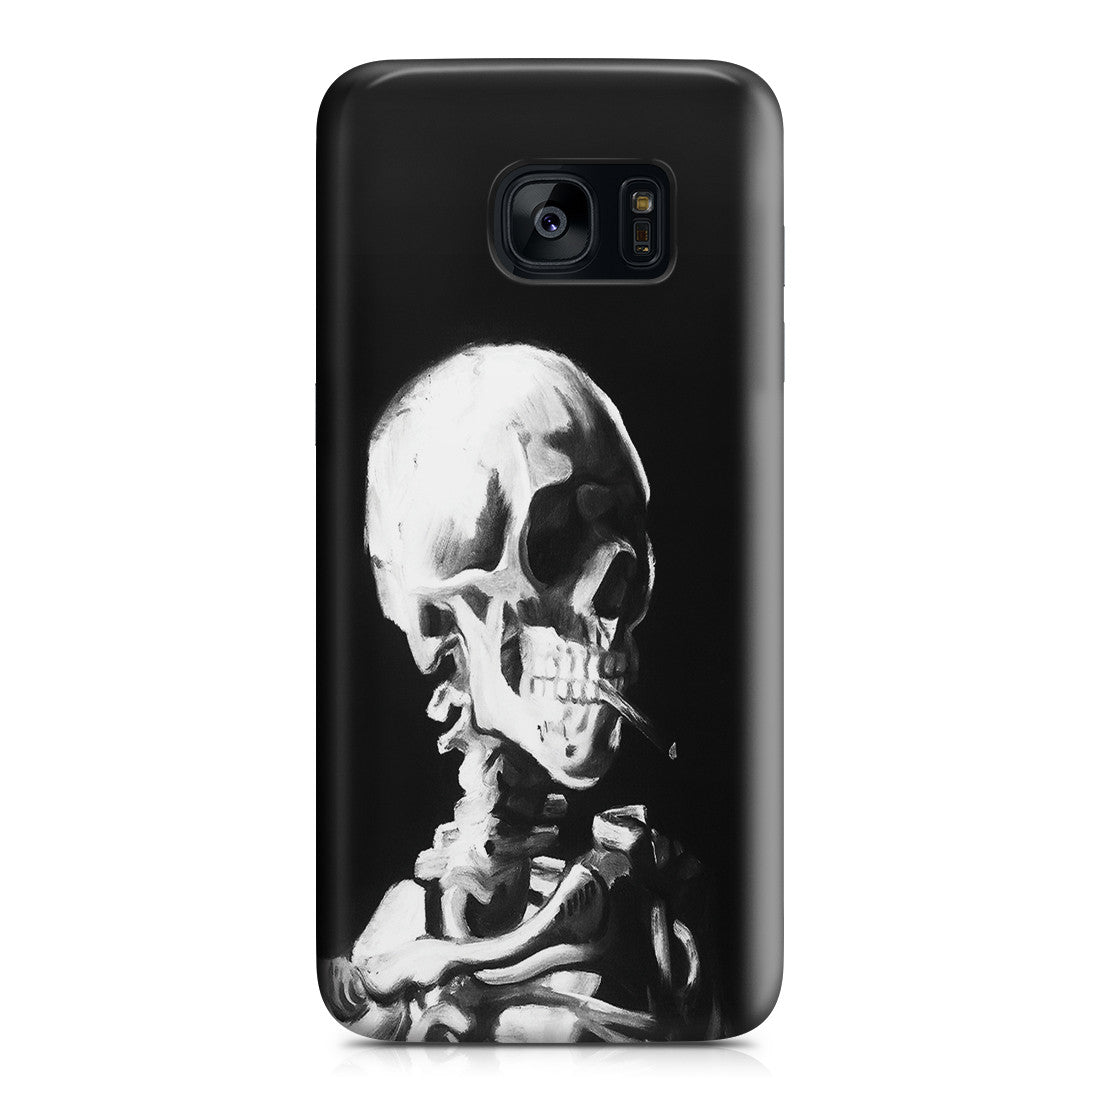 Galaxy S7 Edge Case - Skull of a Skeleton with Burning Cigarette by ...